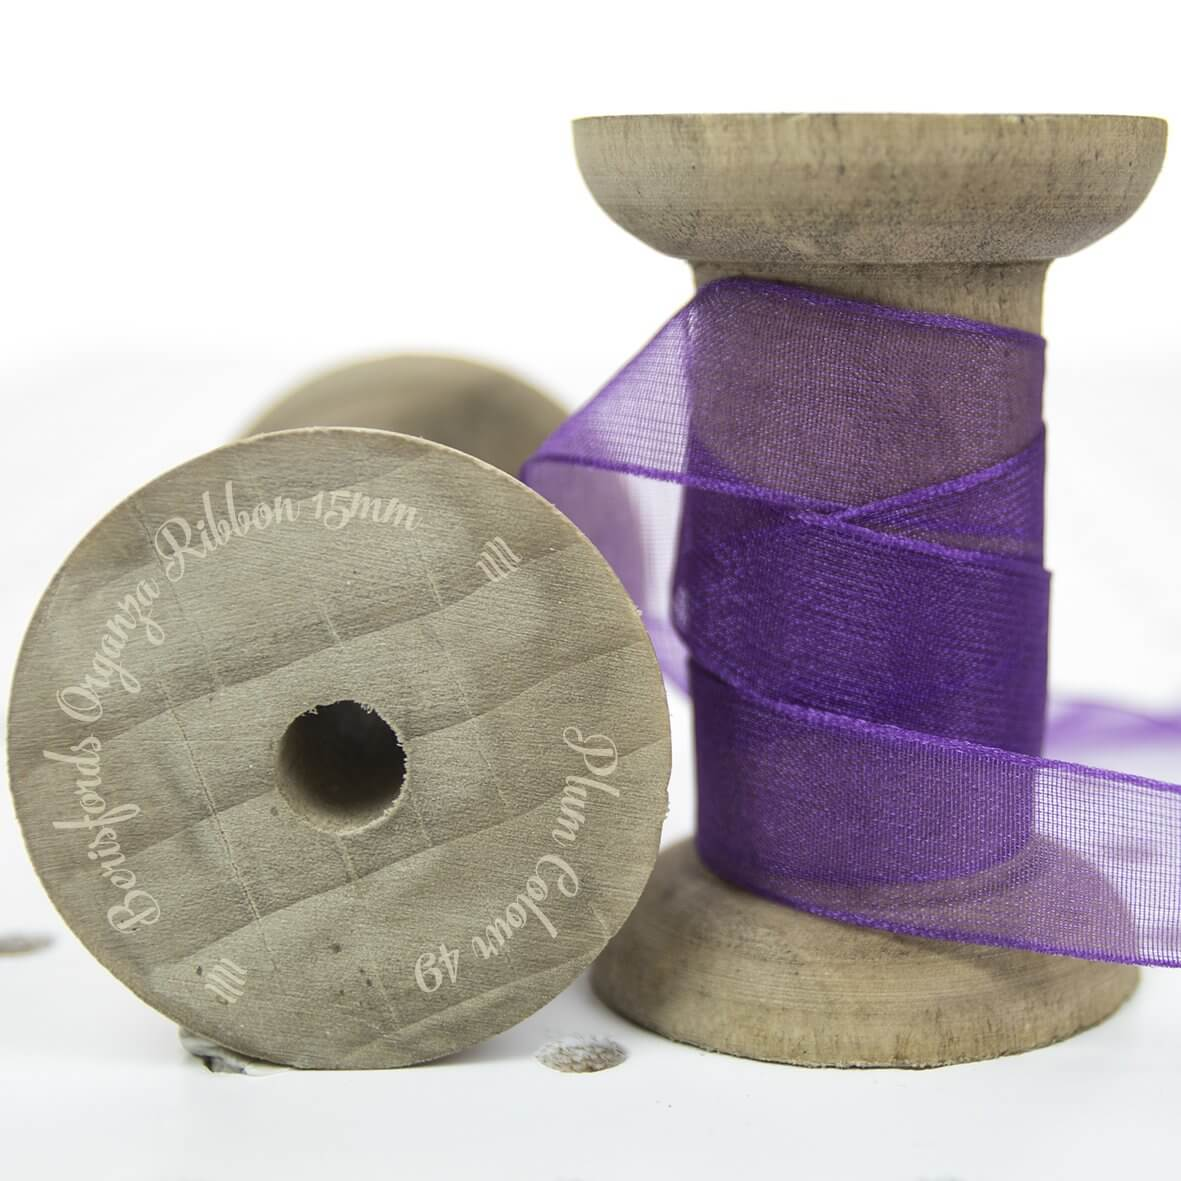 Berisfords Sheer Organza Ribbon 15mm - Plum Colour 49 - Display Reel